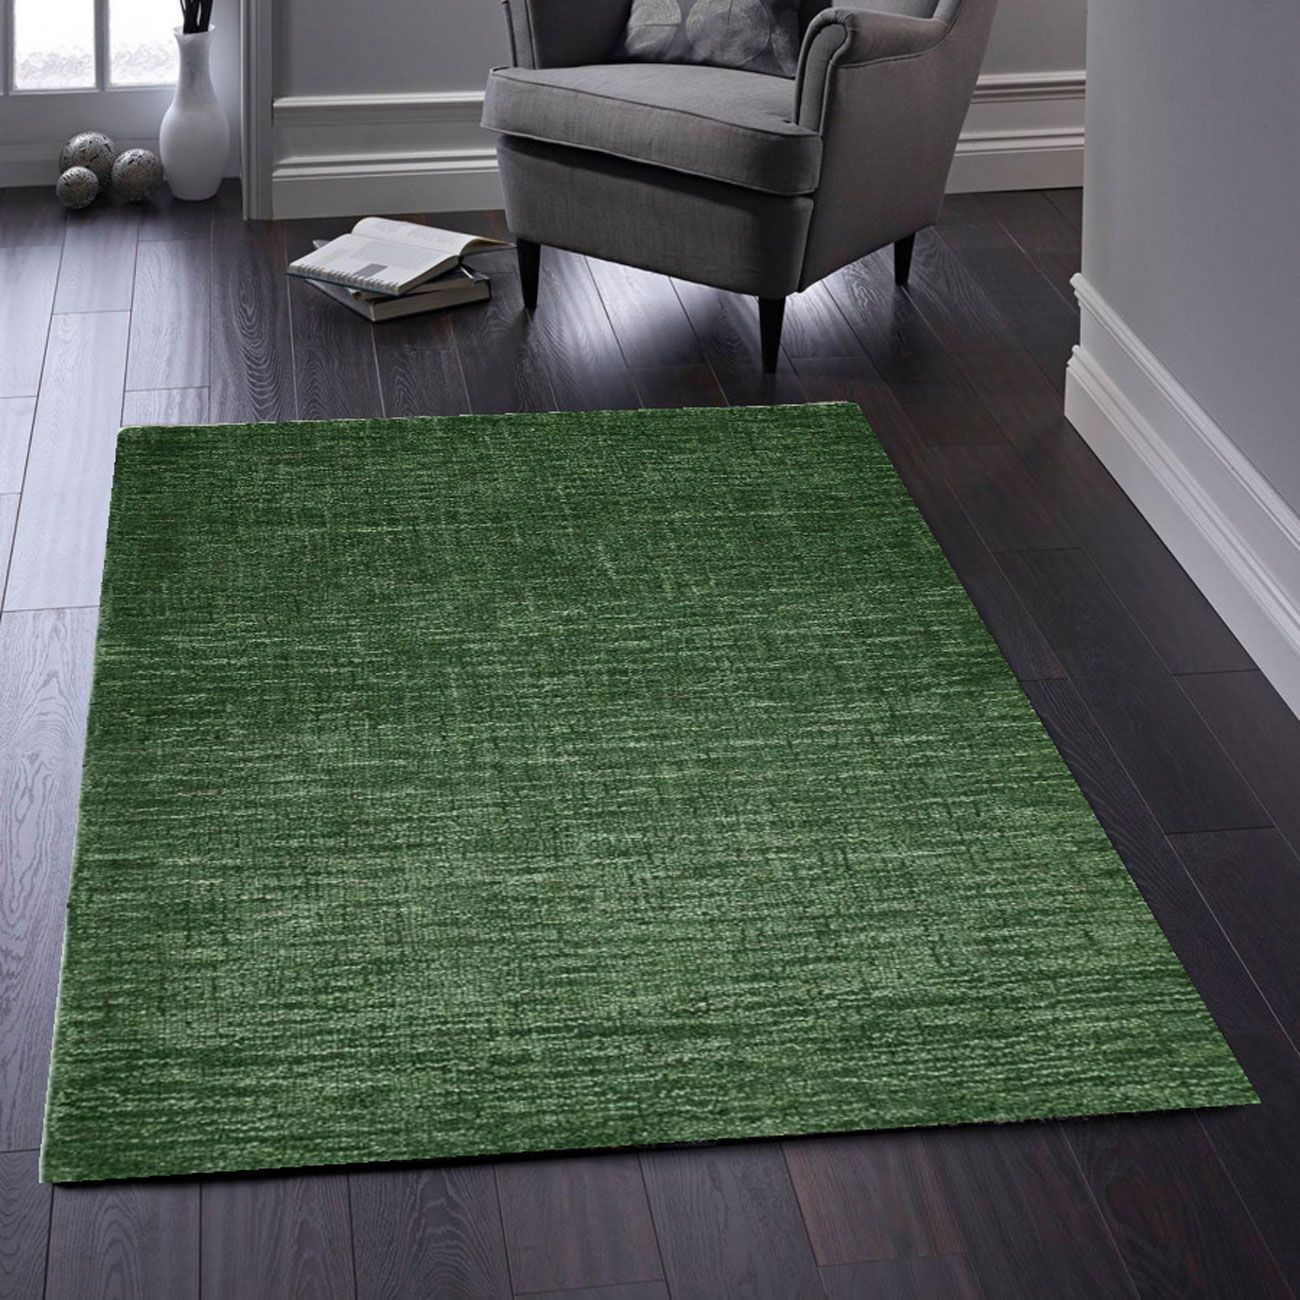 Shop Country Tweed Forest Green Plain Wool Rug Therugshopuk